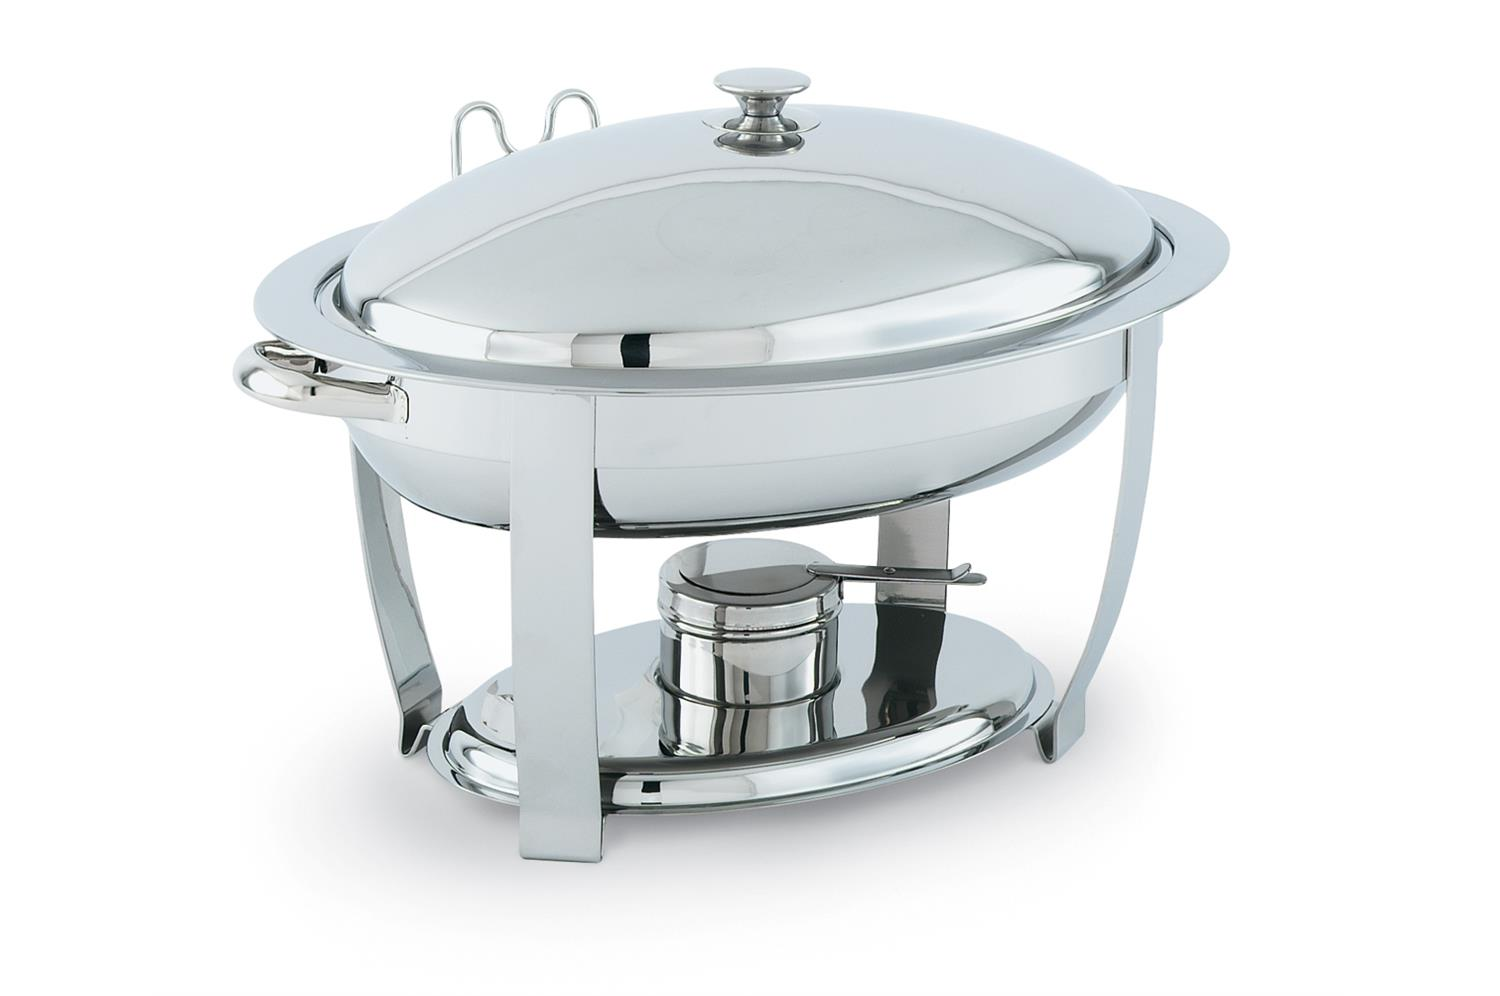 Vollrath 46504 Food Pan, 6 qt oval, Orion